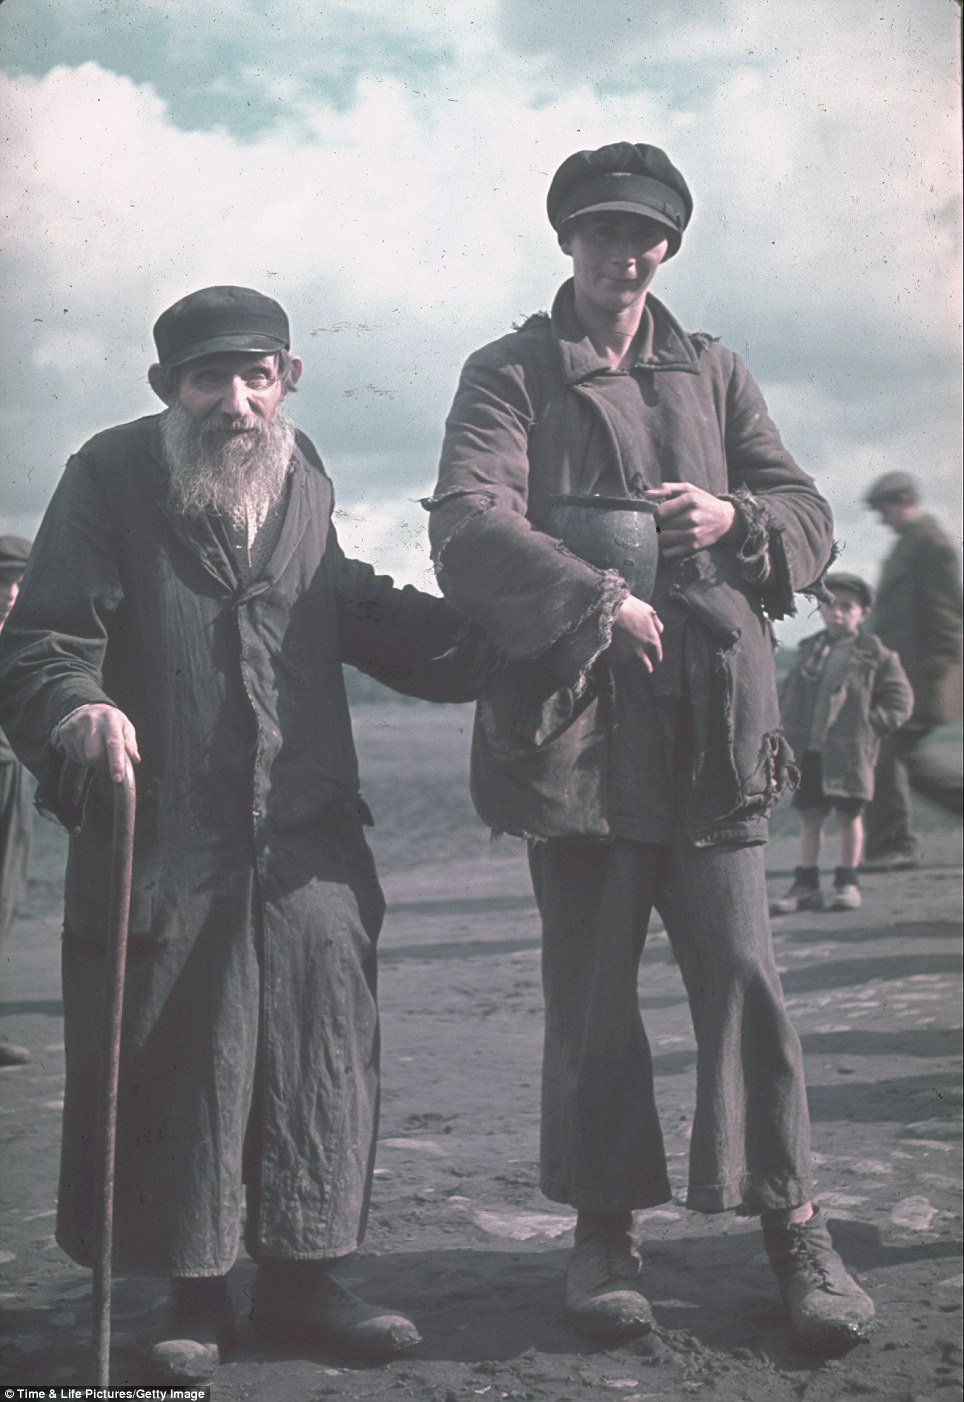 A young woman clutches a jug as she escorts an elderly Jewish man through the Kutno Ghetto in early 1940